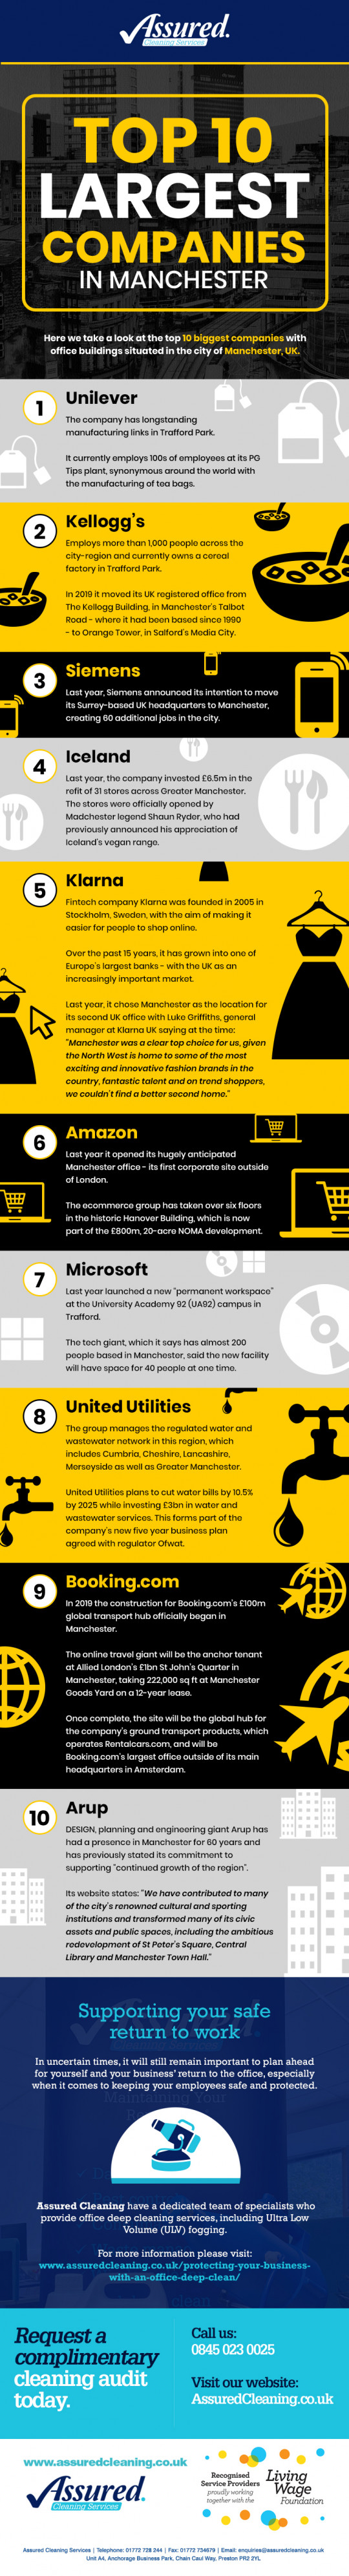 Top 10 Largest Companies in Manchester